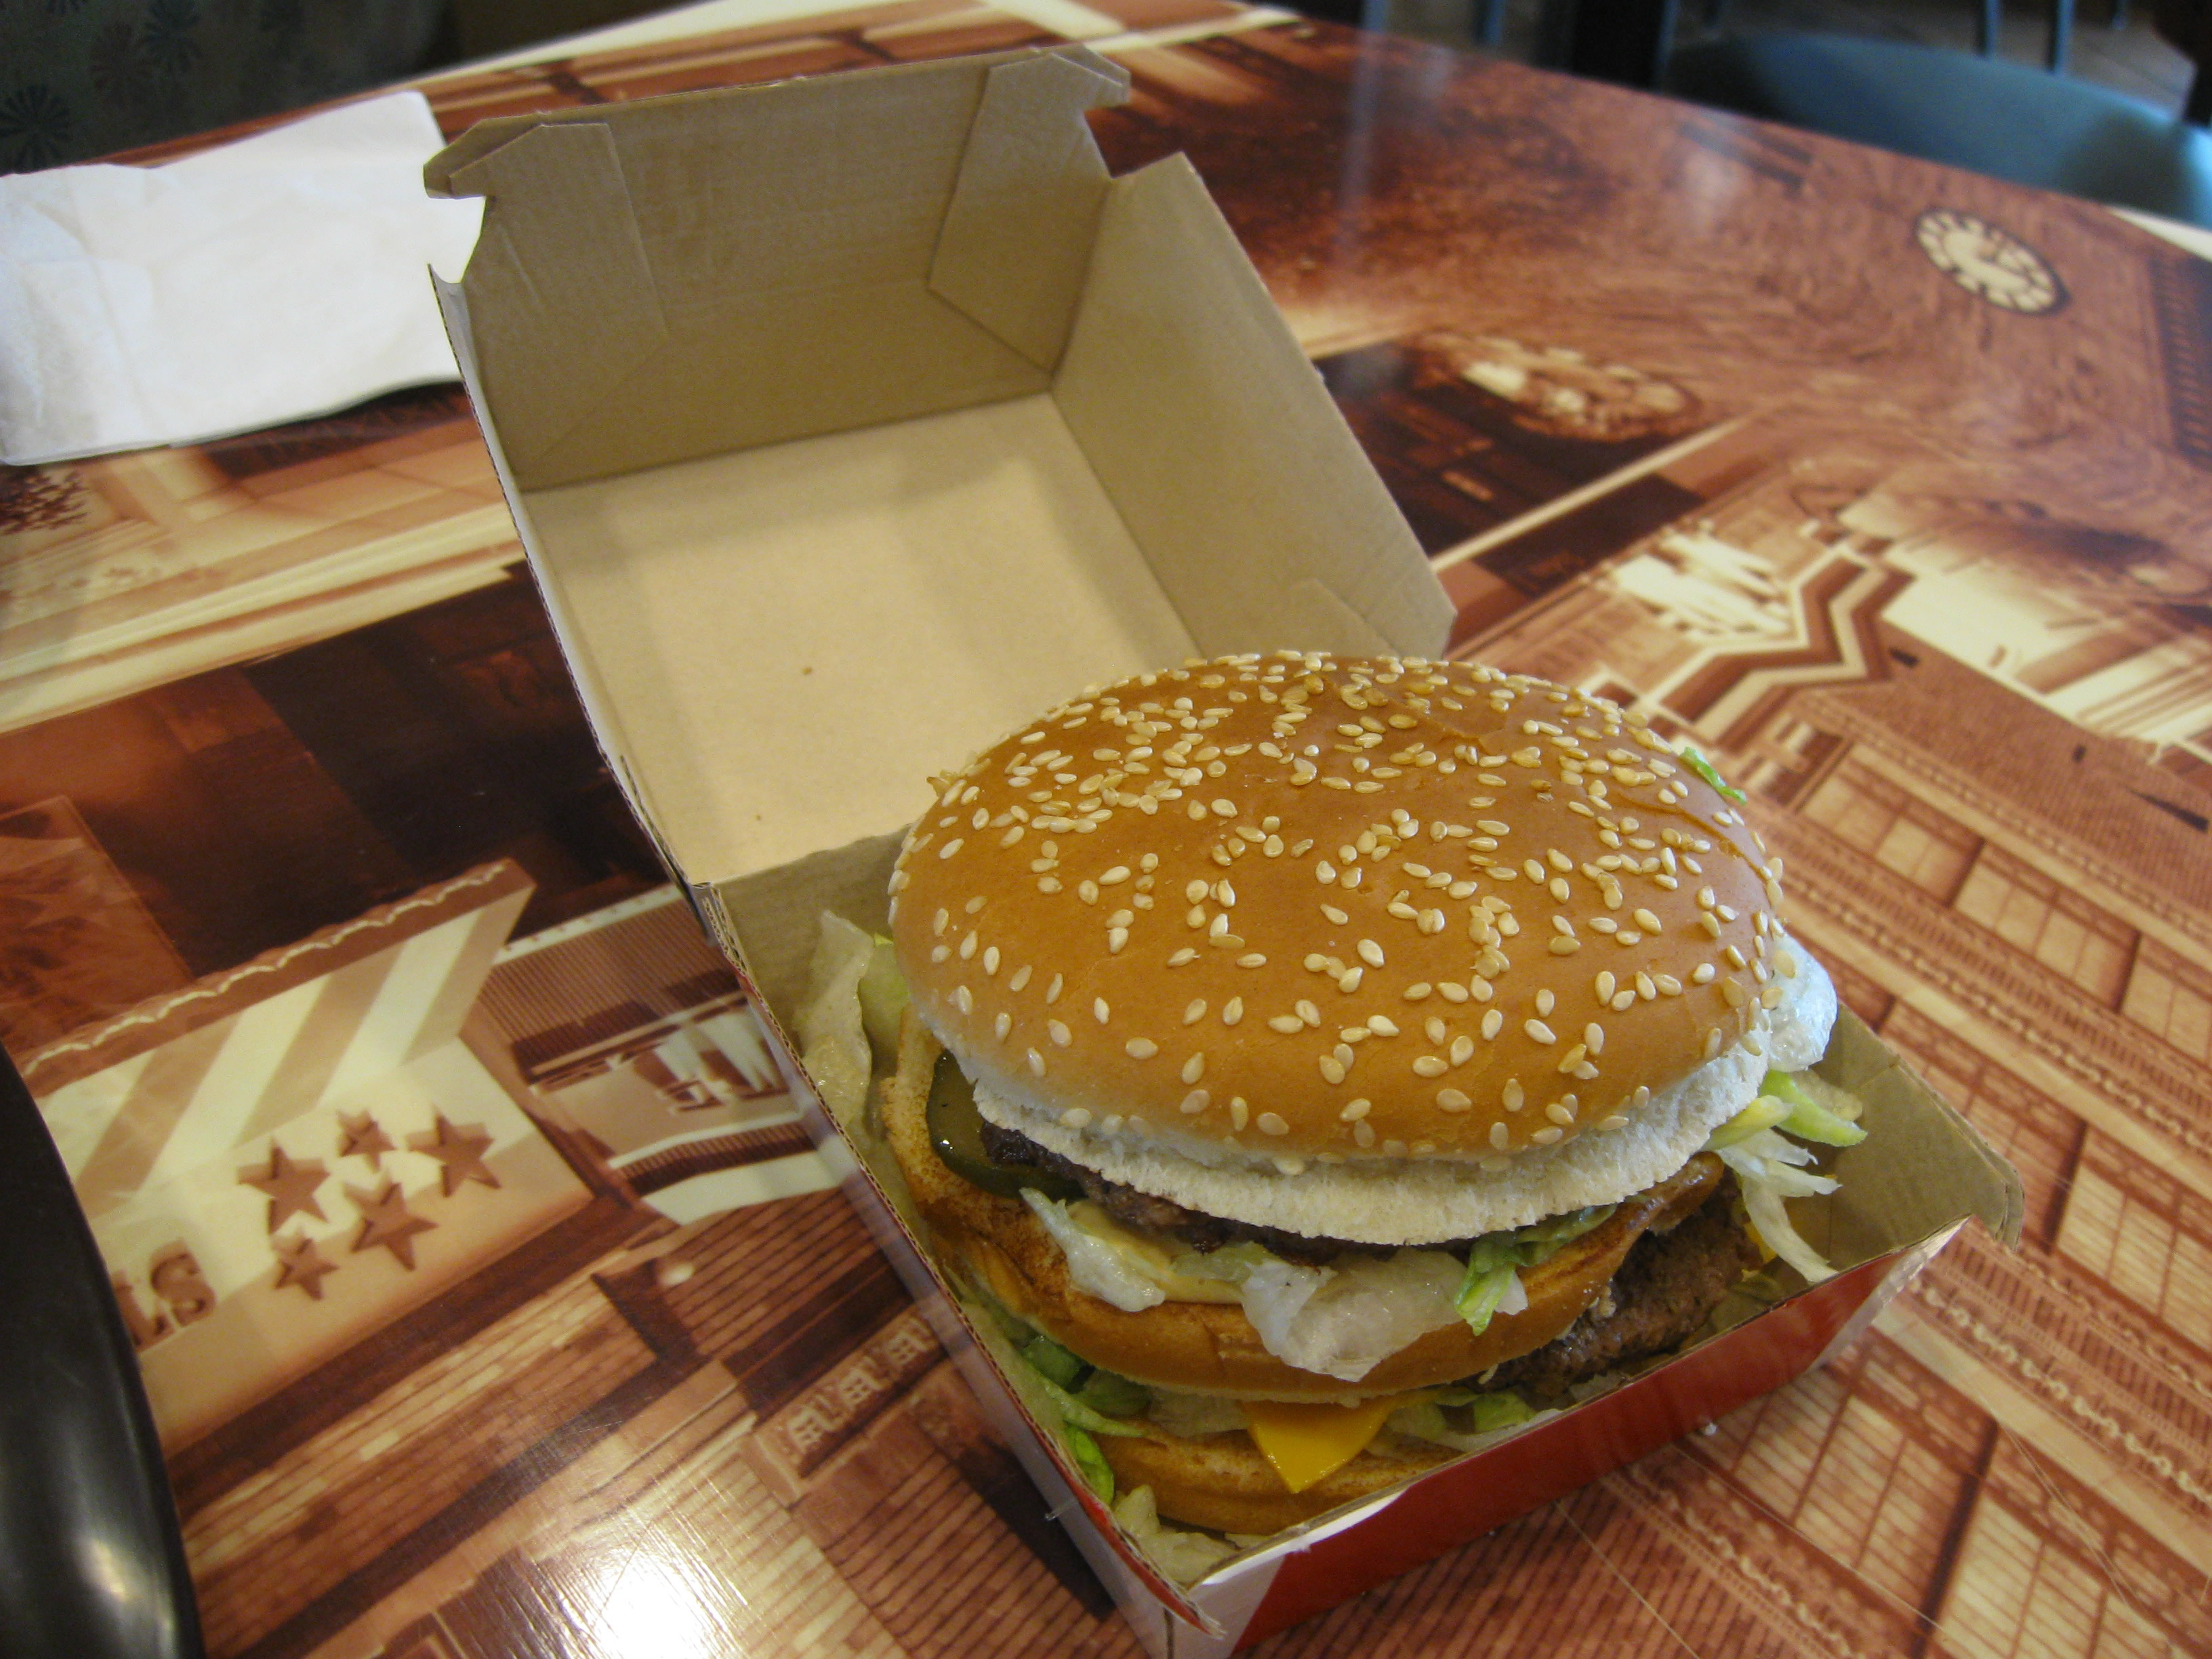 A Big Mac in its box